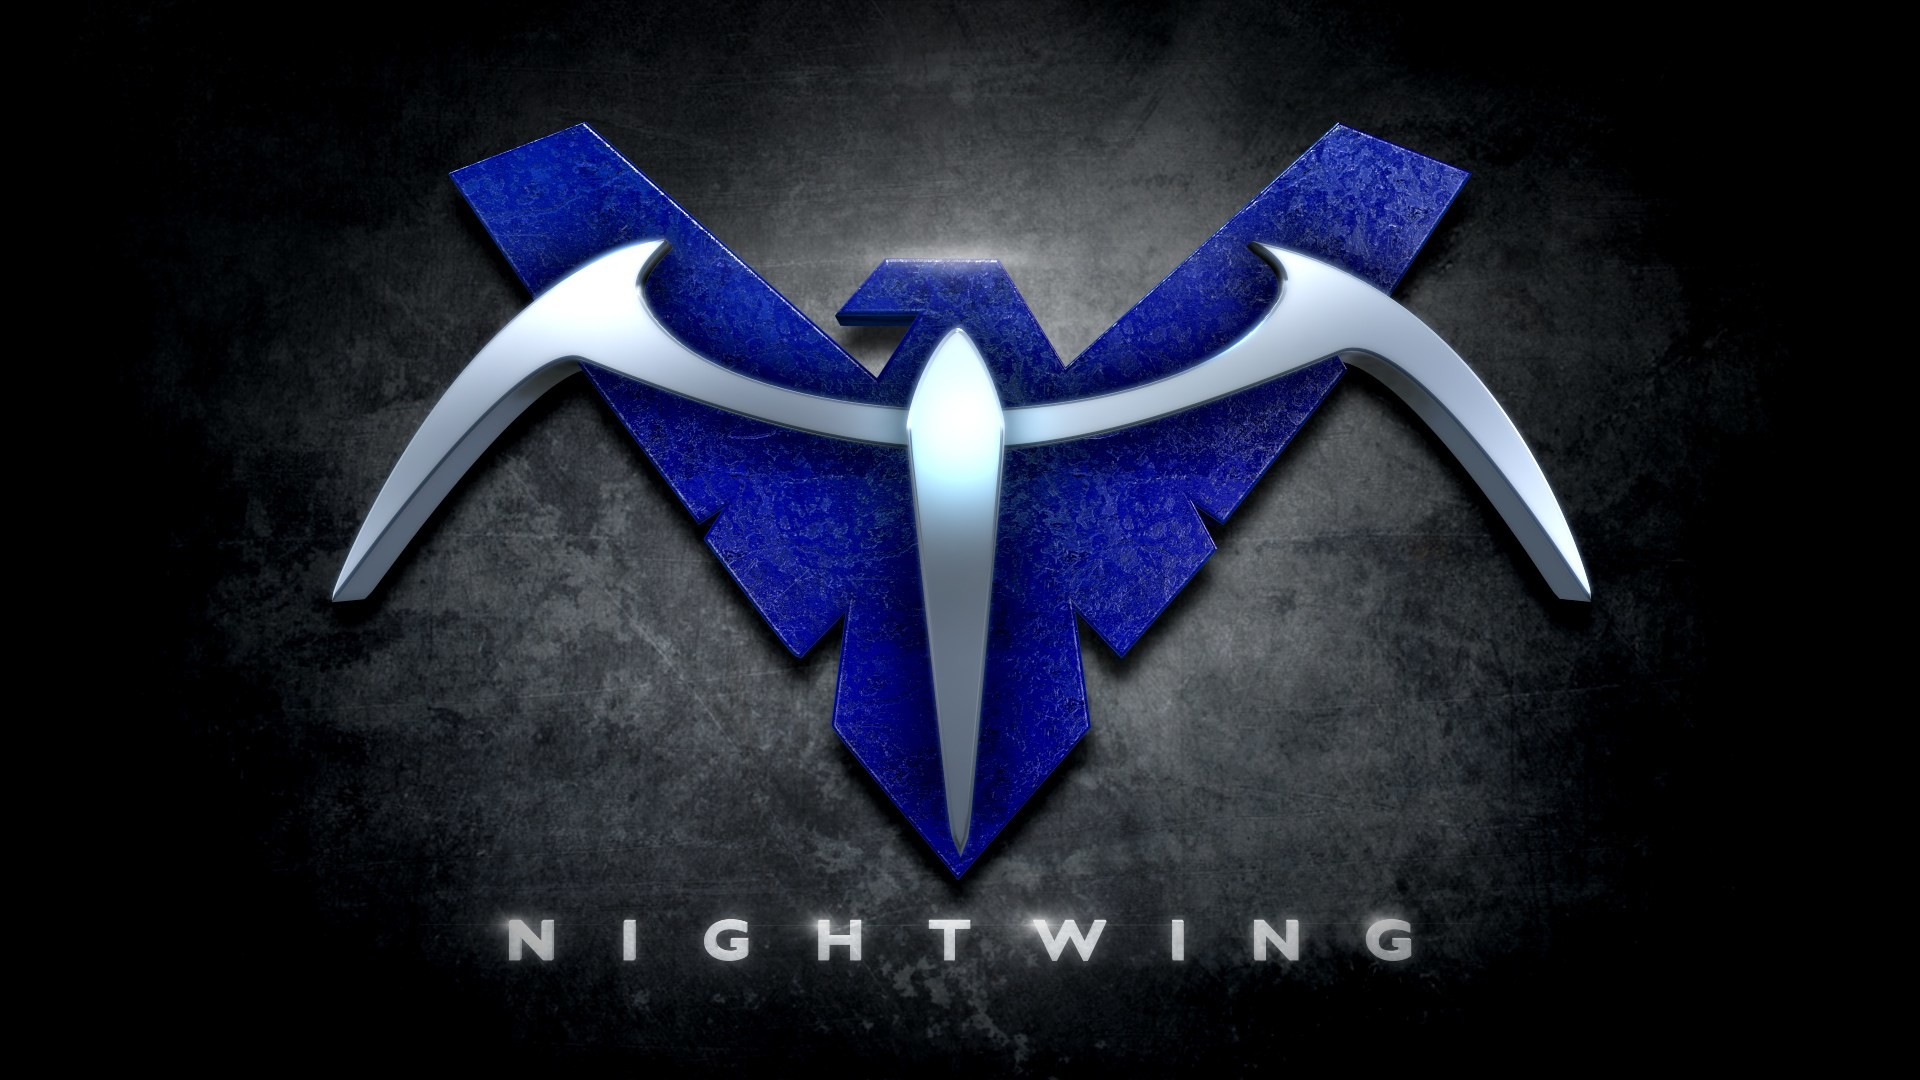 Nightwing HD Wallpaper  WallpaperSafari